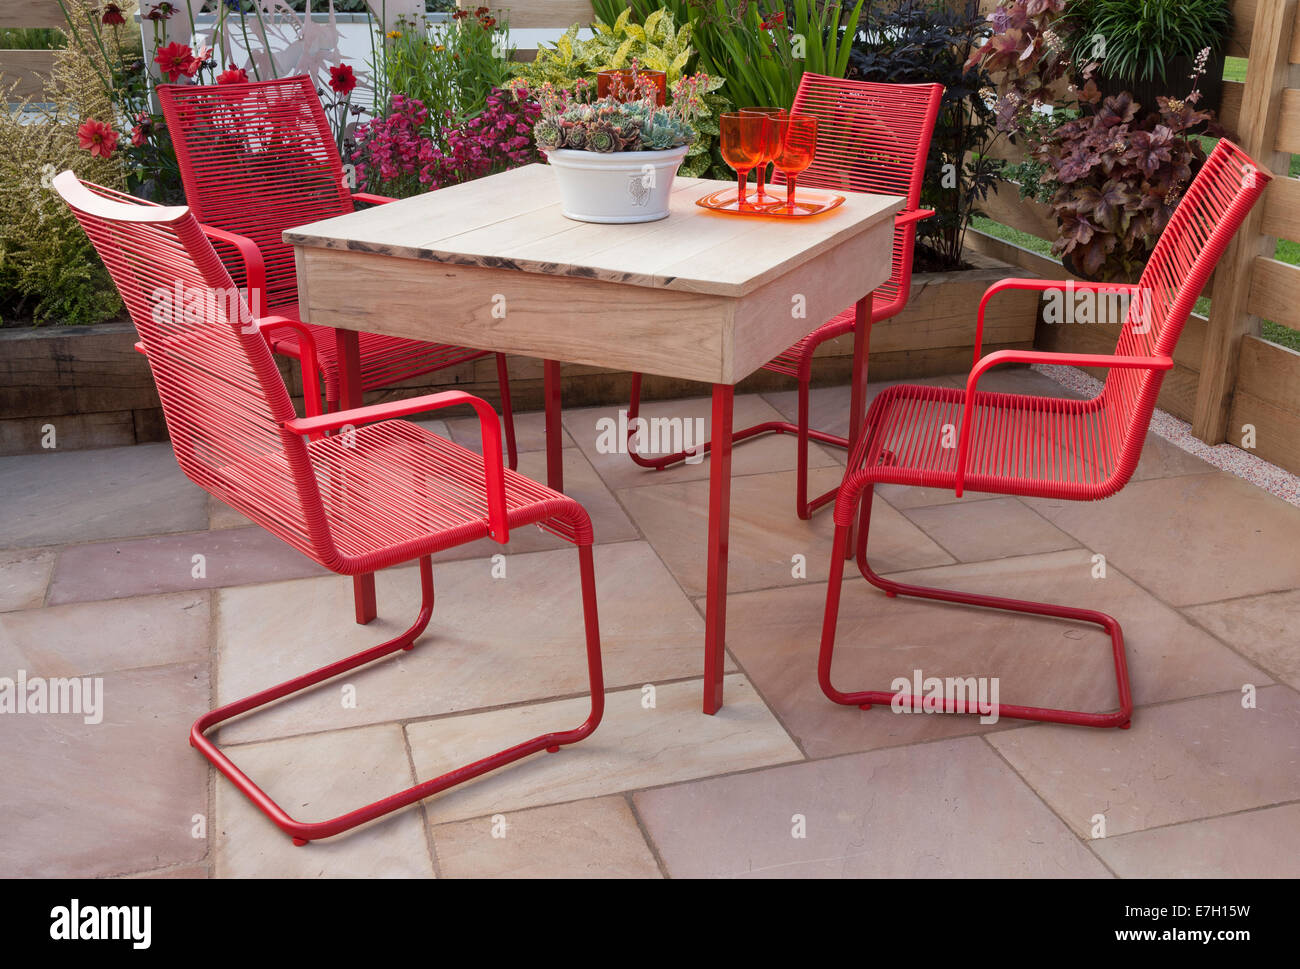 Garden - The Narrows - patio with table and red chairs plant pot with sempervivum - Designer - Pip Probert - - Stock Image